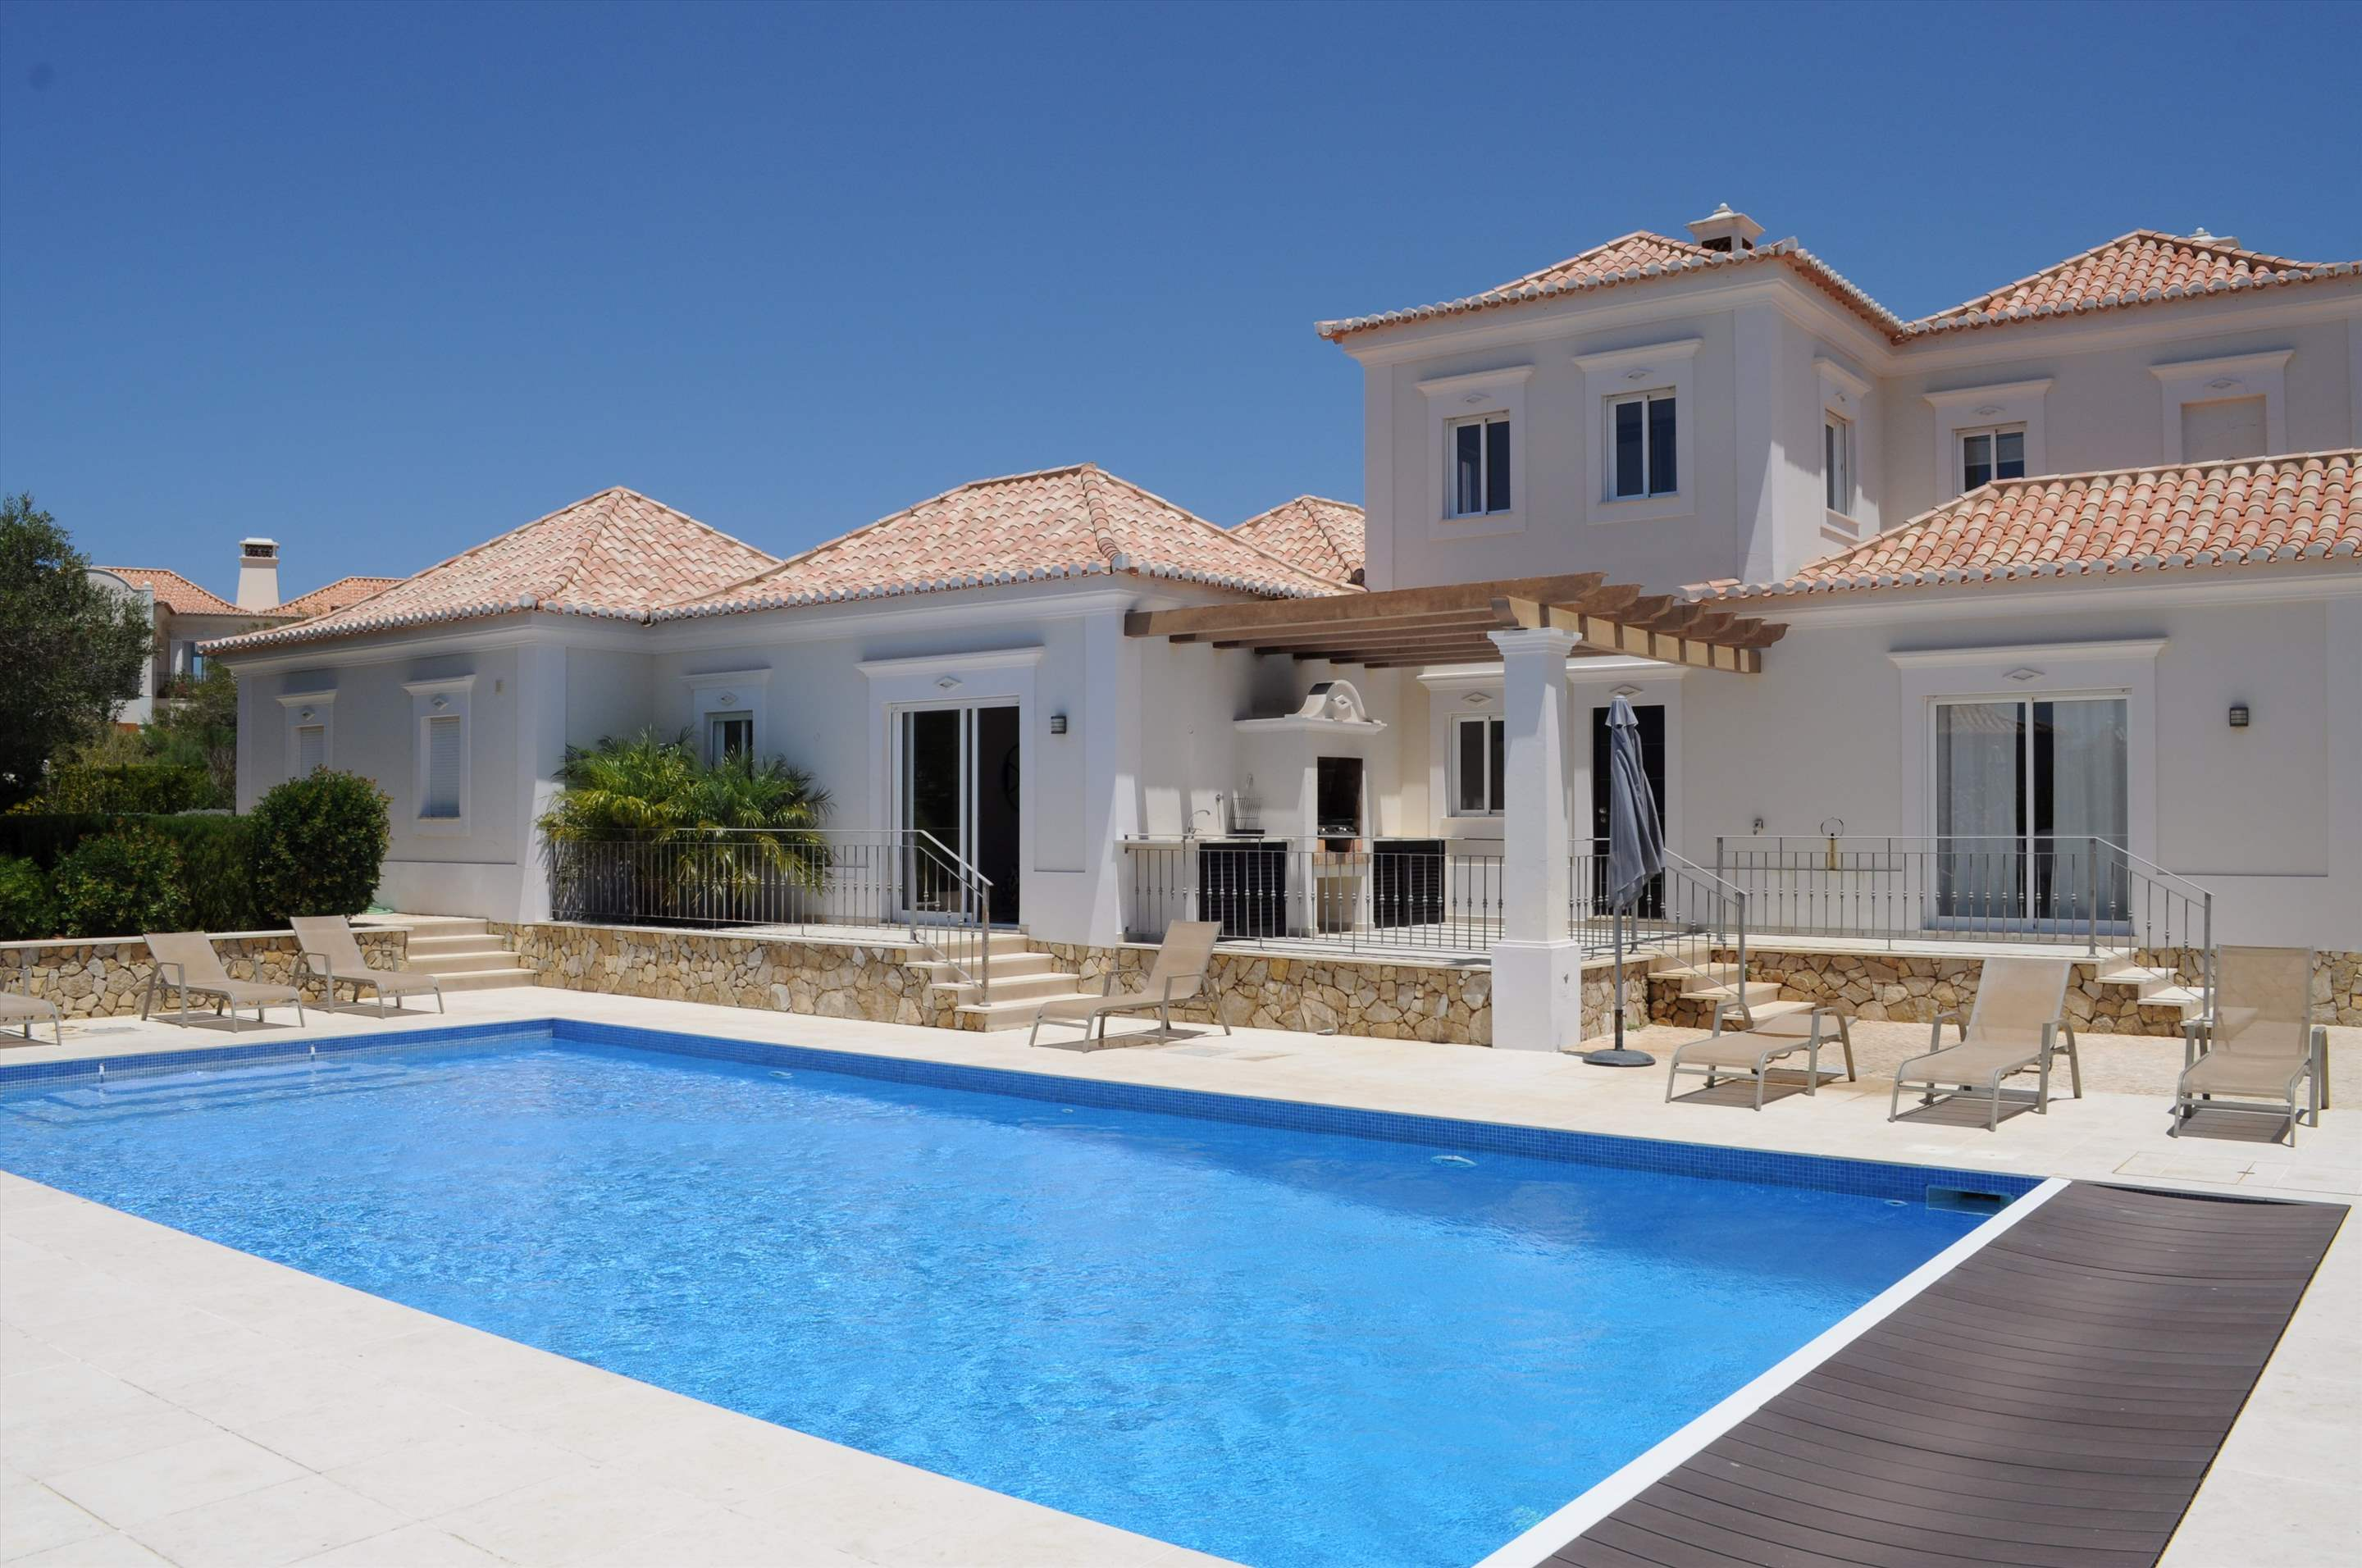 Martinhal Luxury Villa No.18, 5 bedroom villa in Martinhal Sagres, Algarve Photo #1